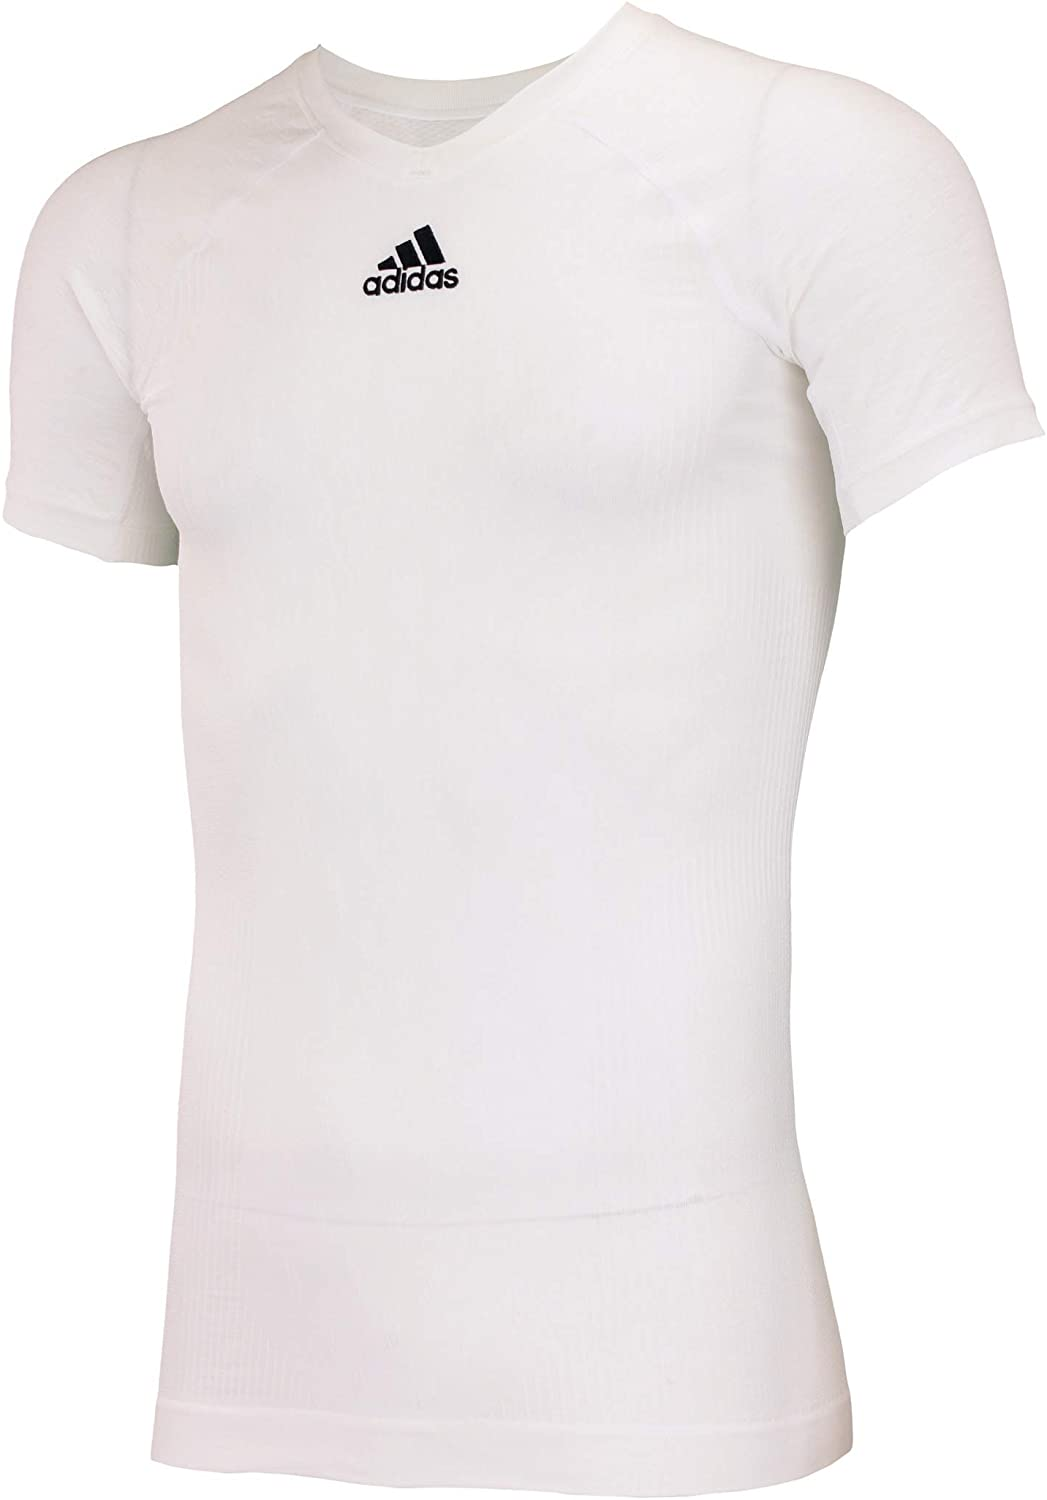 adidas Climacool Primeknit Techfit Mens Performance Compression Short Sleeve T-Shirt